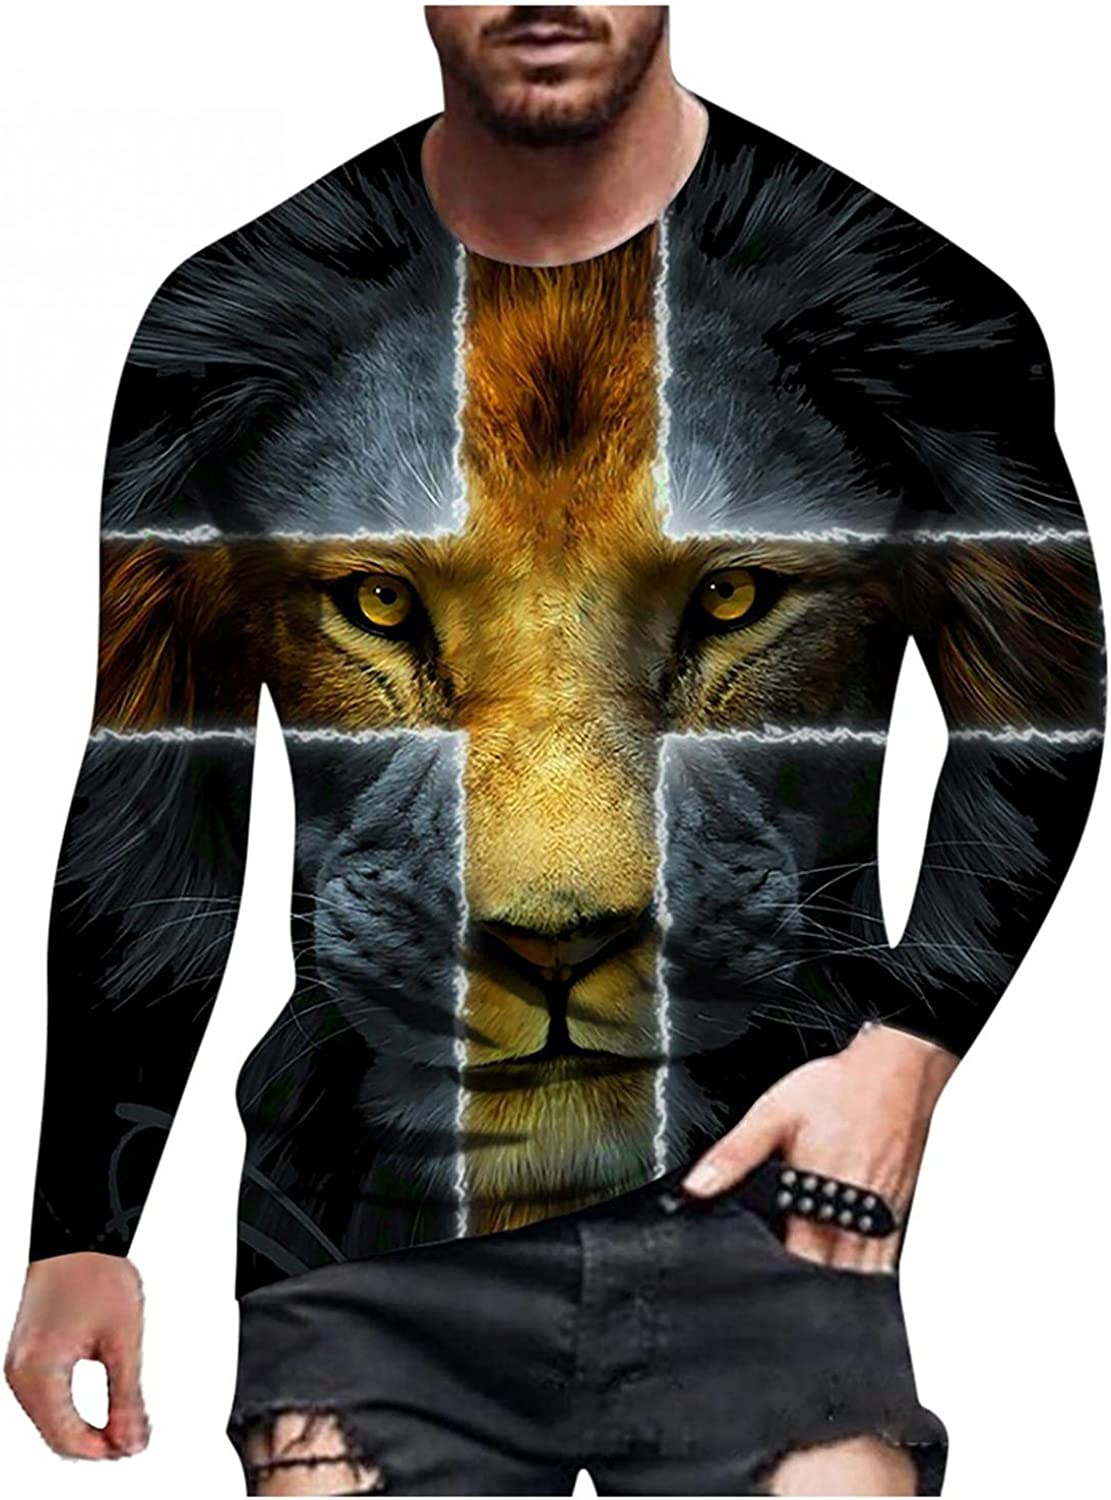 Aayomet Men's T Shirts Vintage Graphic Long Sleeve Round Neck T-Shirt Casual Sport Workout Athletic Tee Tops Shirts